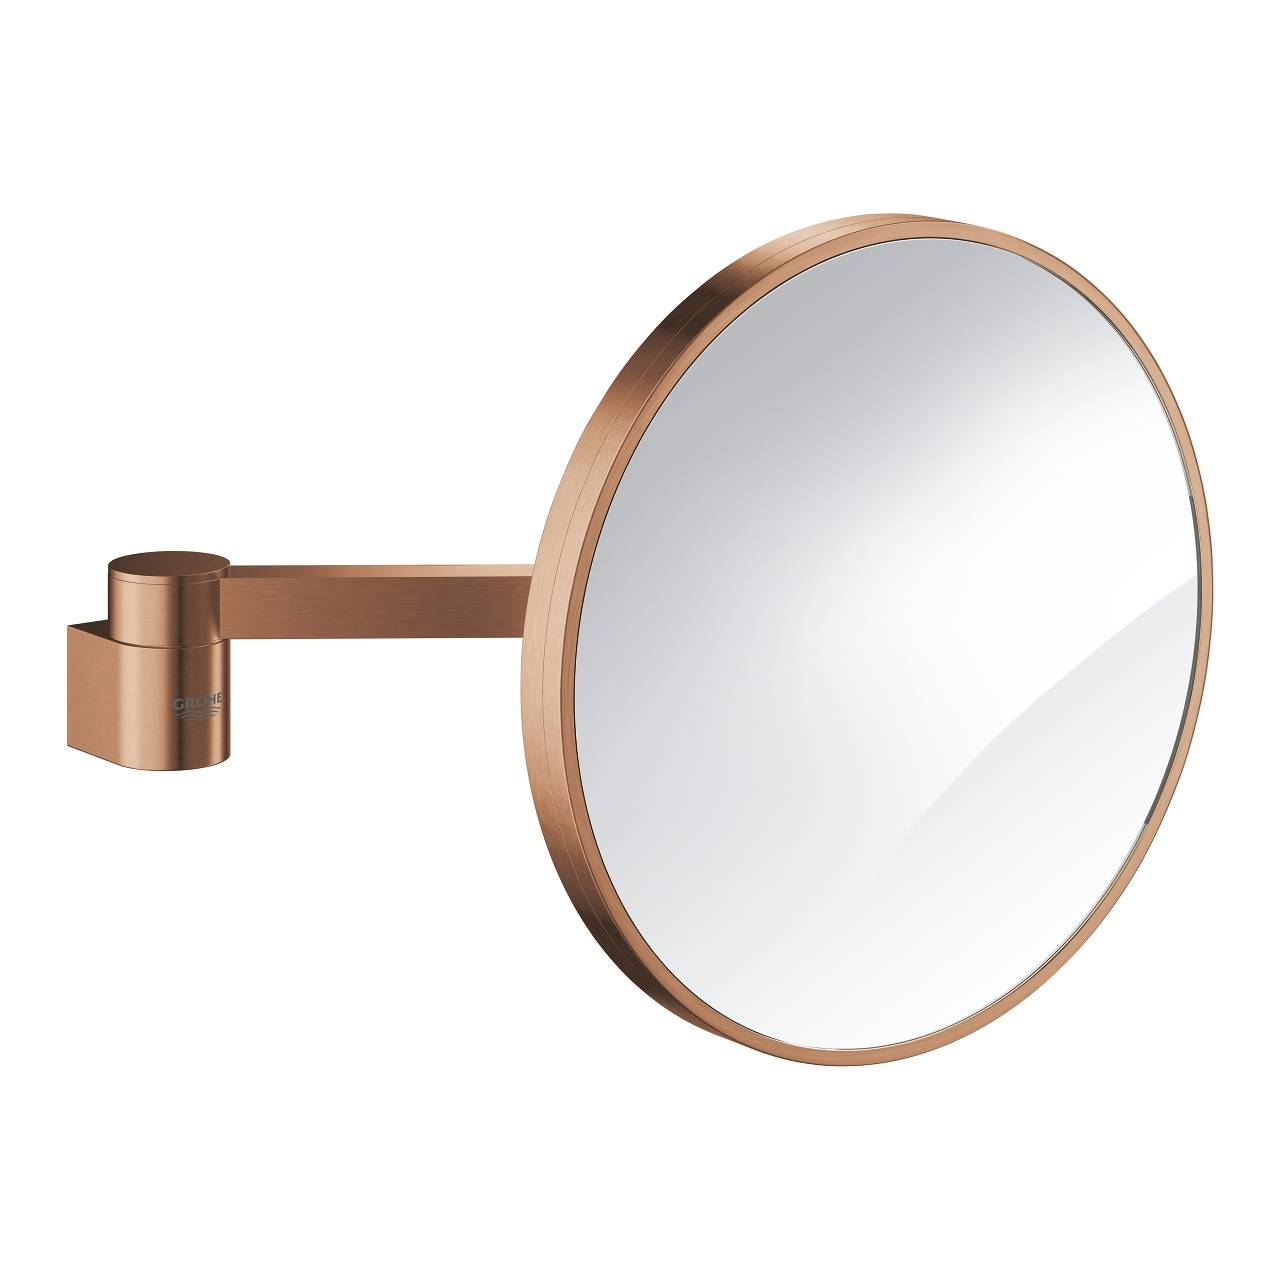 Grohe Selection - Miroir cosmétique mirrored / brushed warm sunset